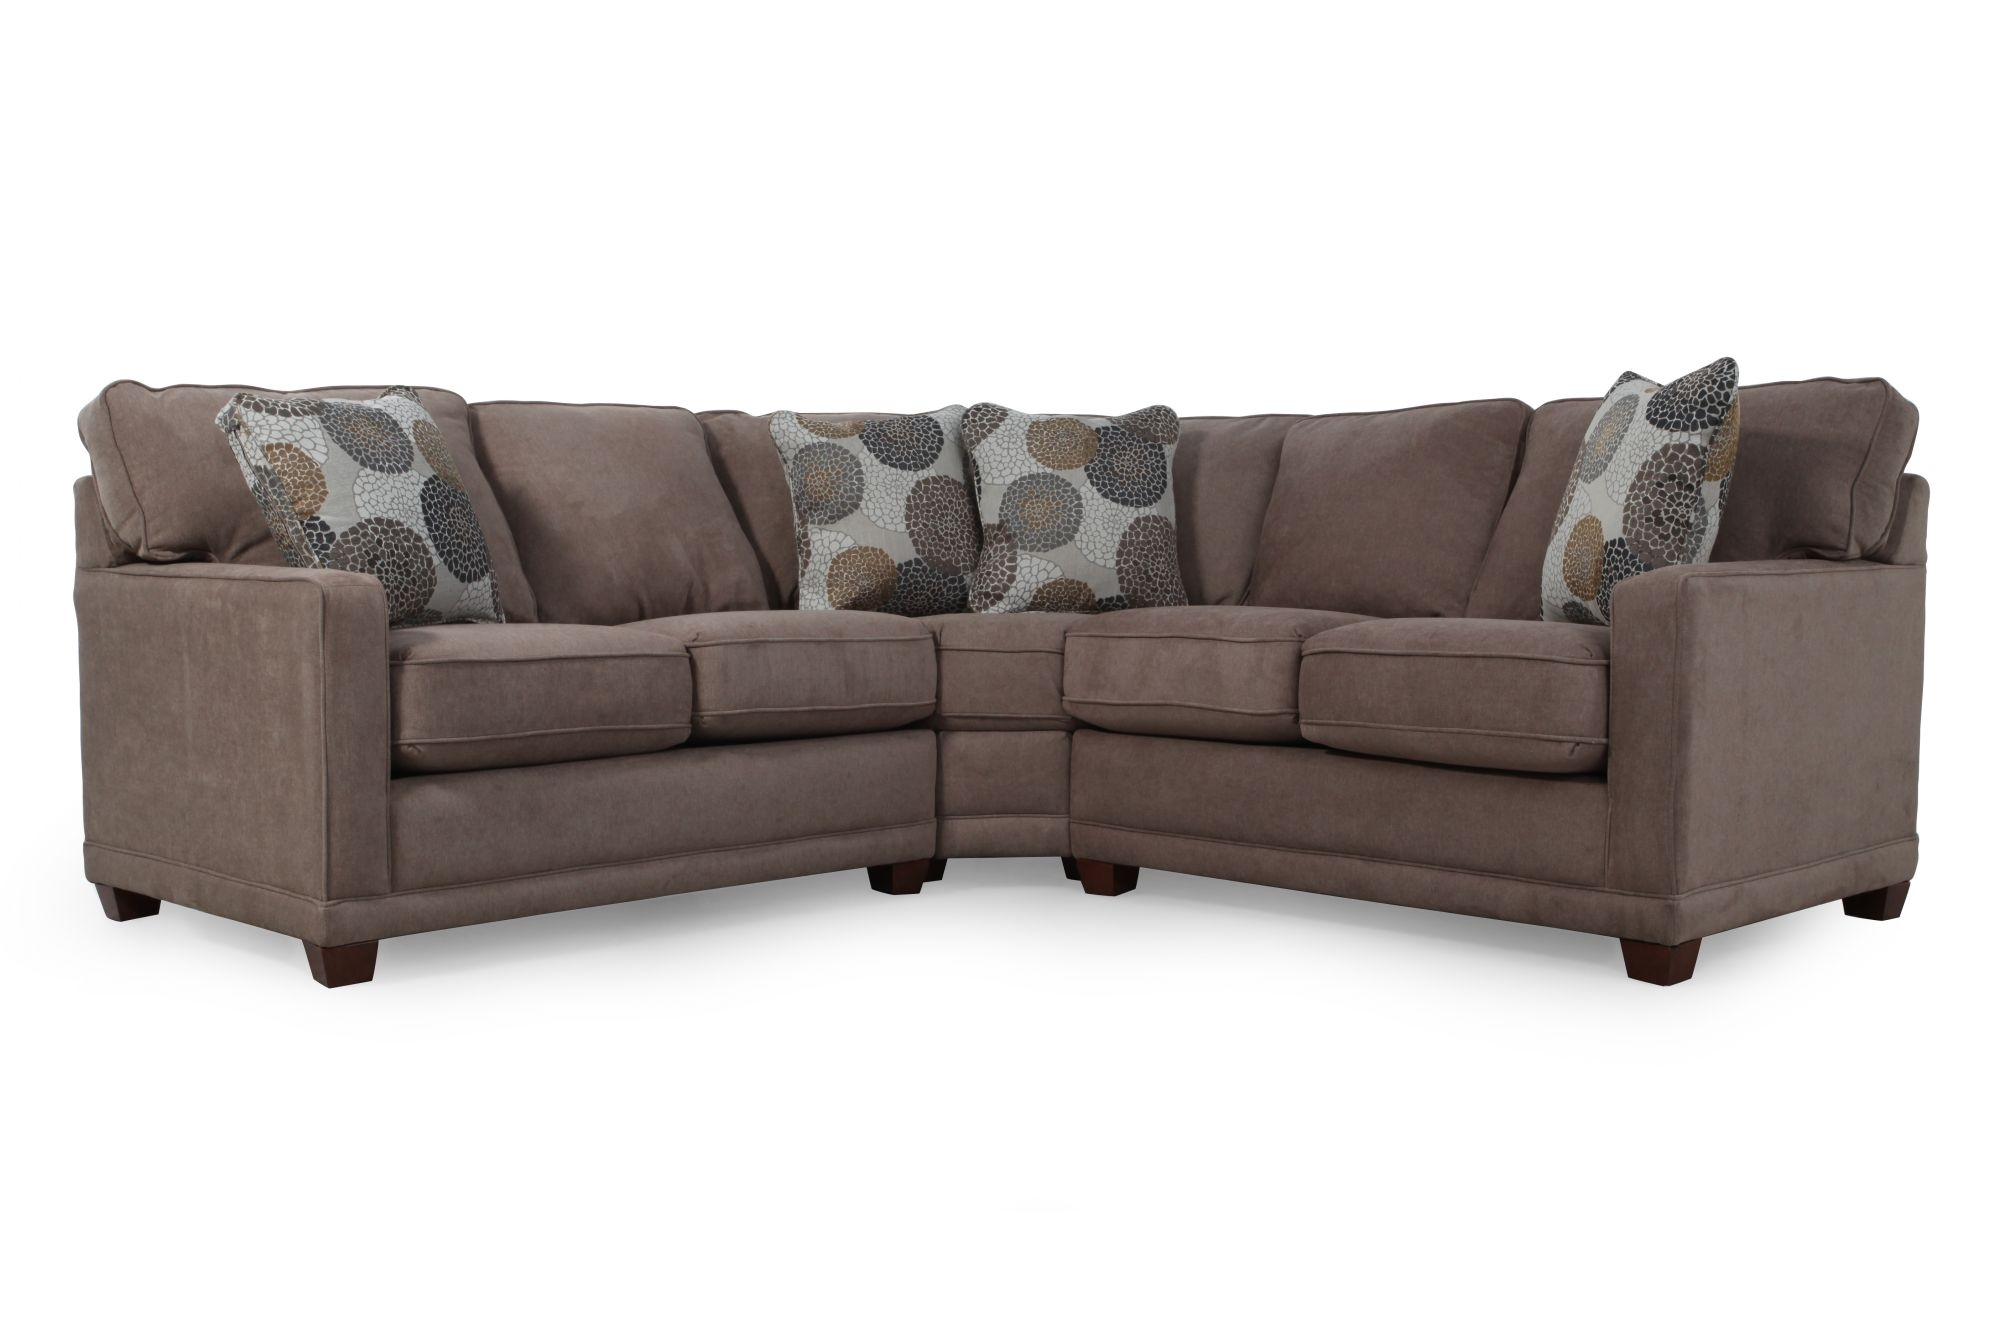 Lazy Boy Sectional Sofa Throughout Sofas Rueckspiegel Org Designs In Within Lazy Boy Sectional Sofas (View 4 of 10)